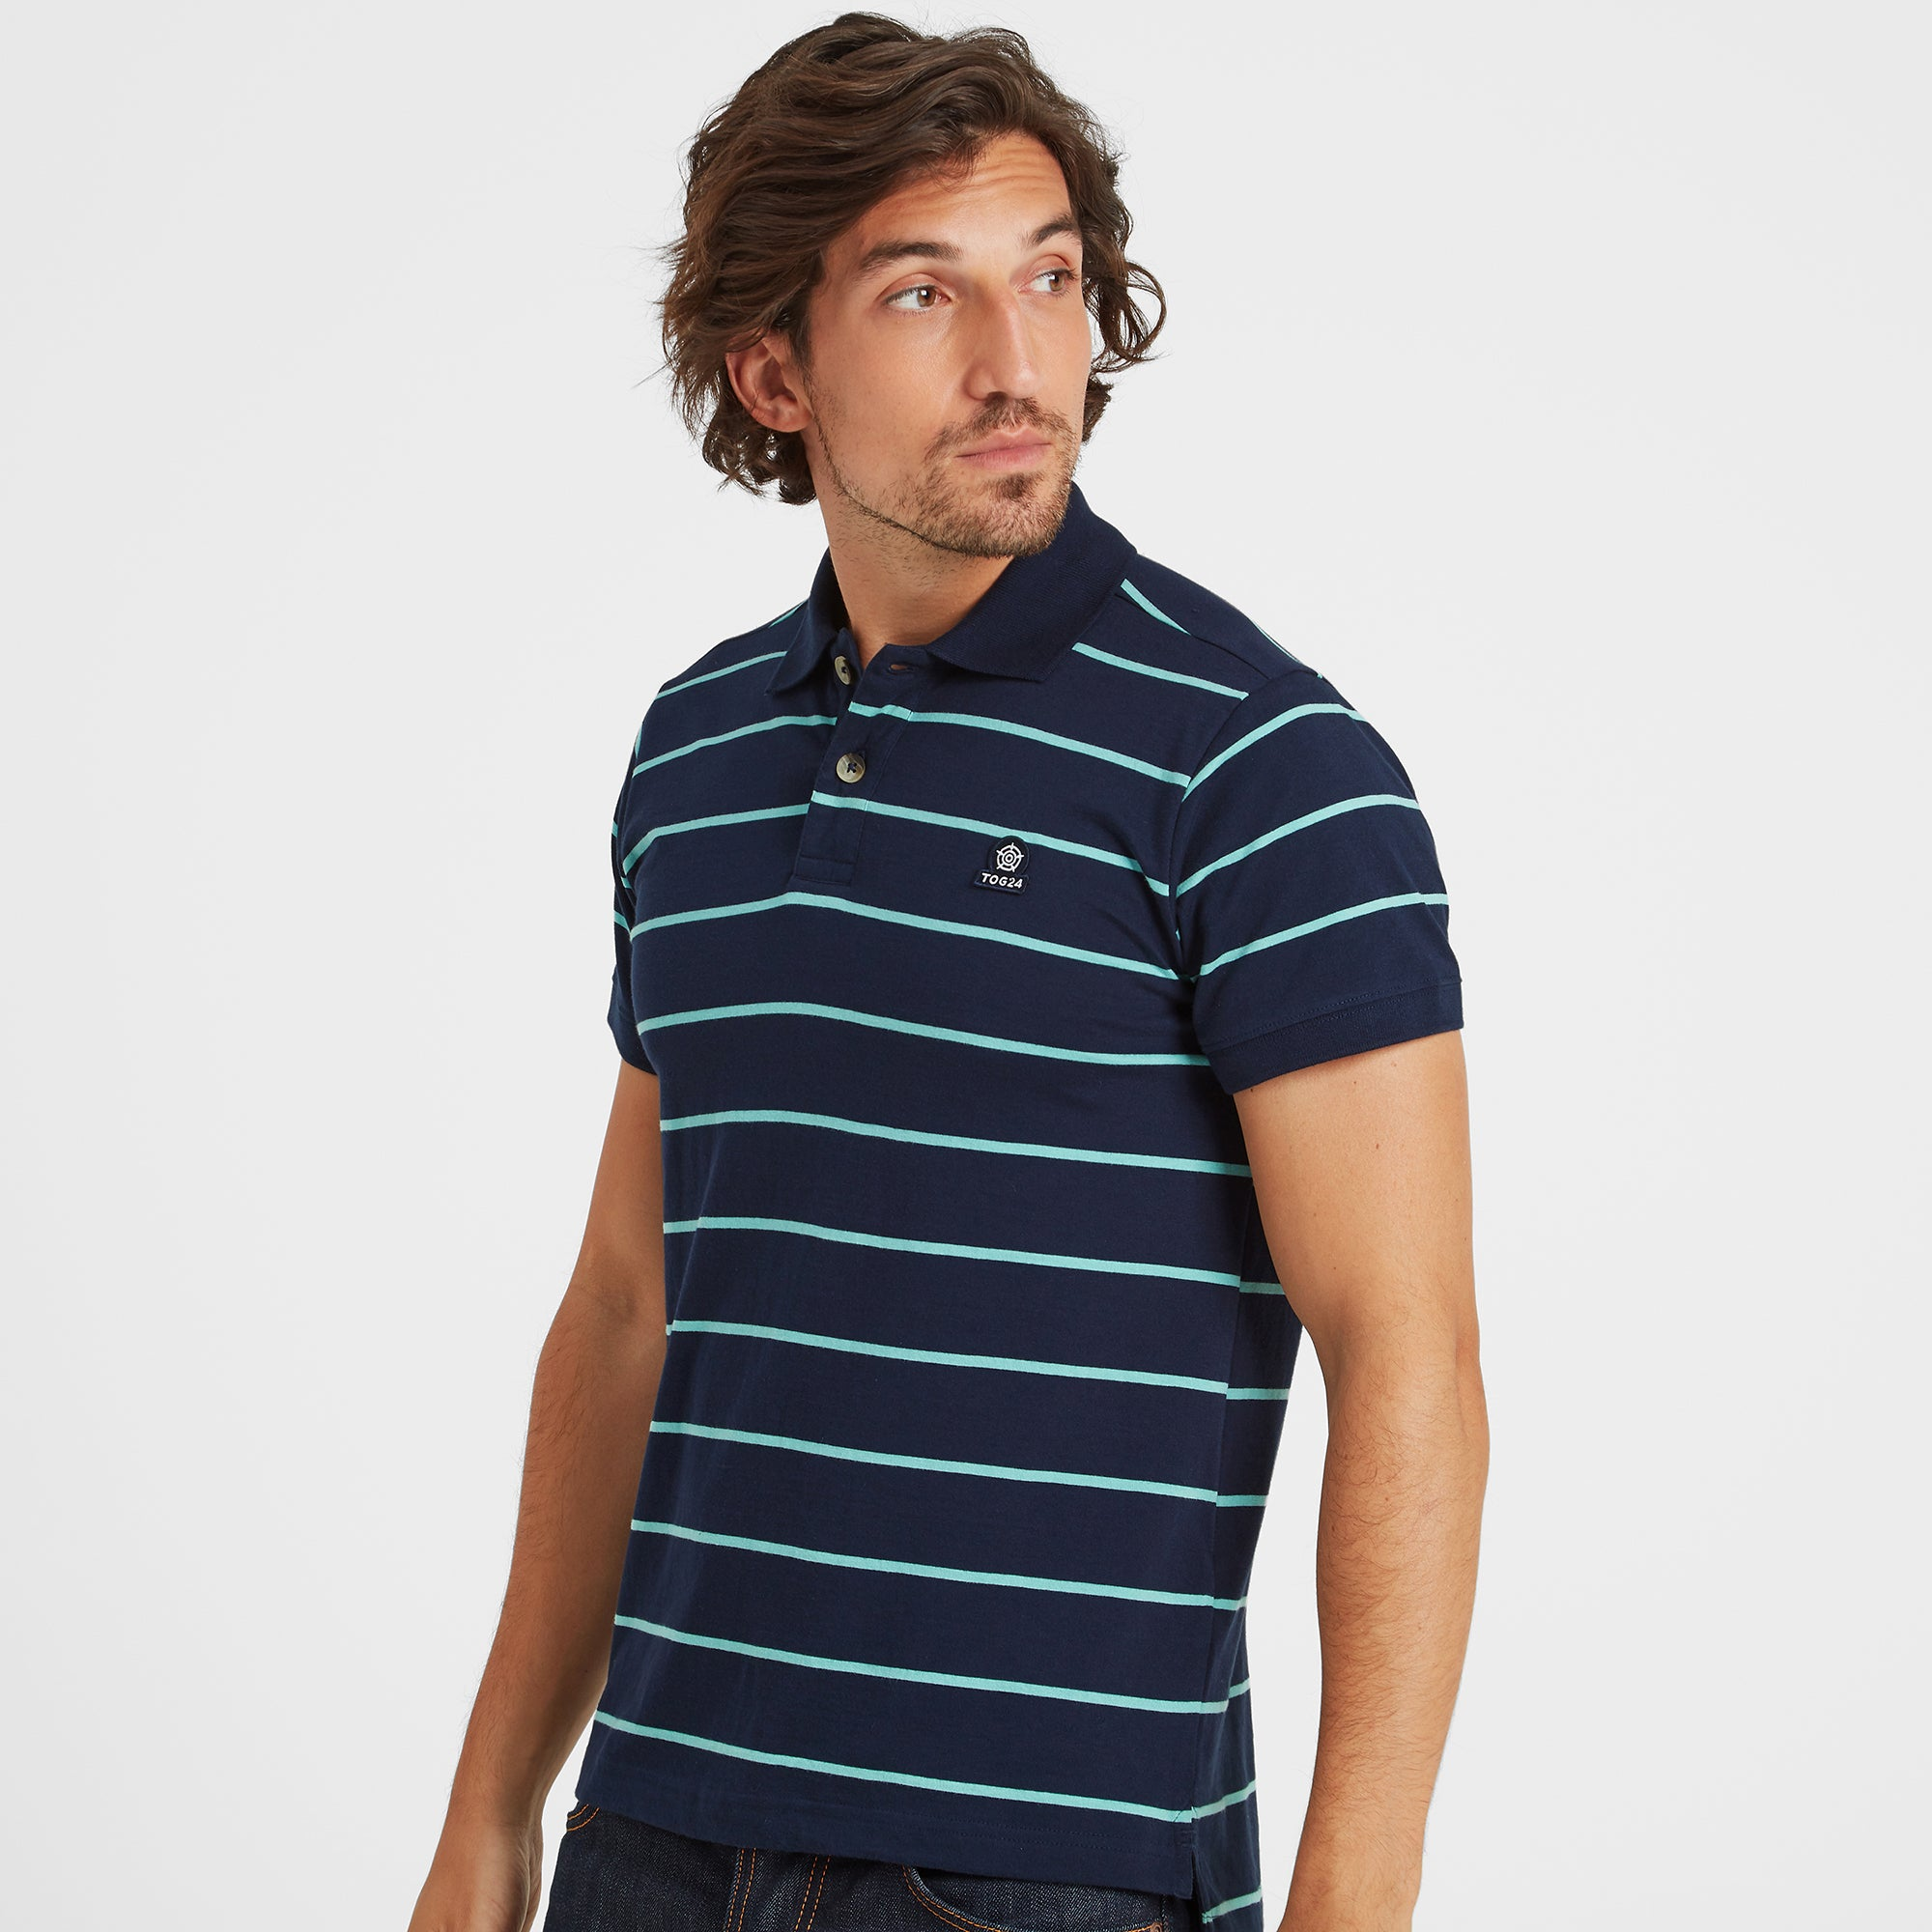 Alfie Mens Stripe Polo Shirt - Navy